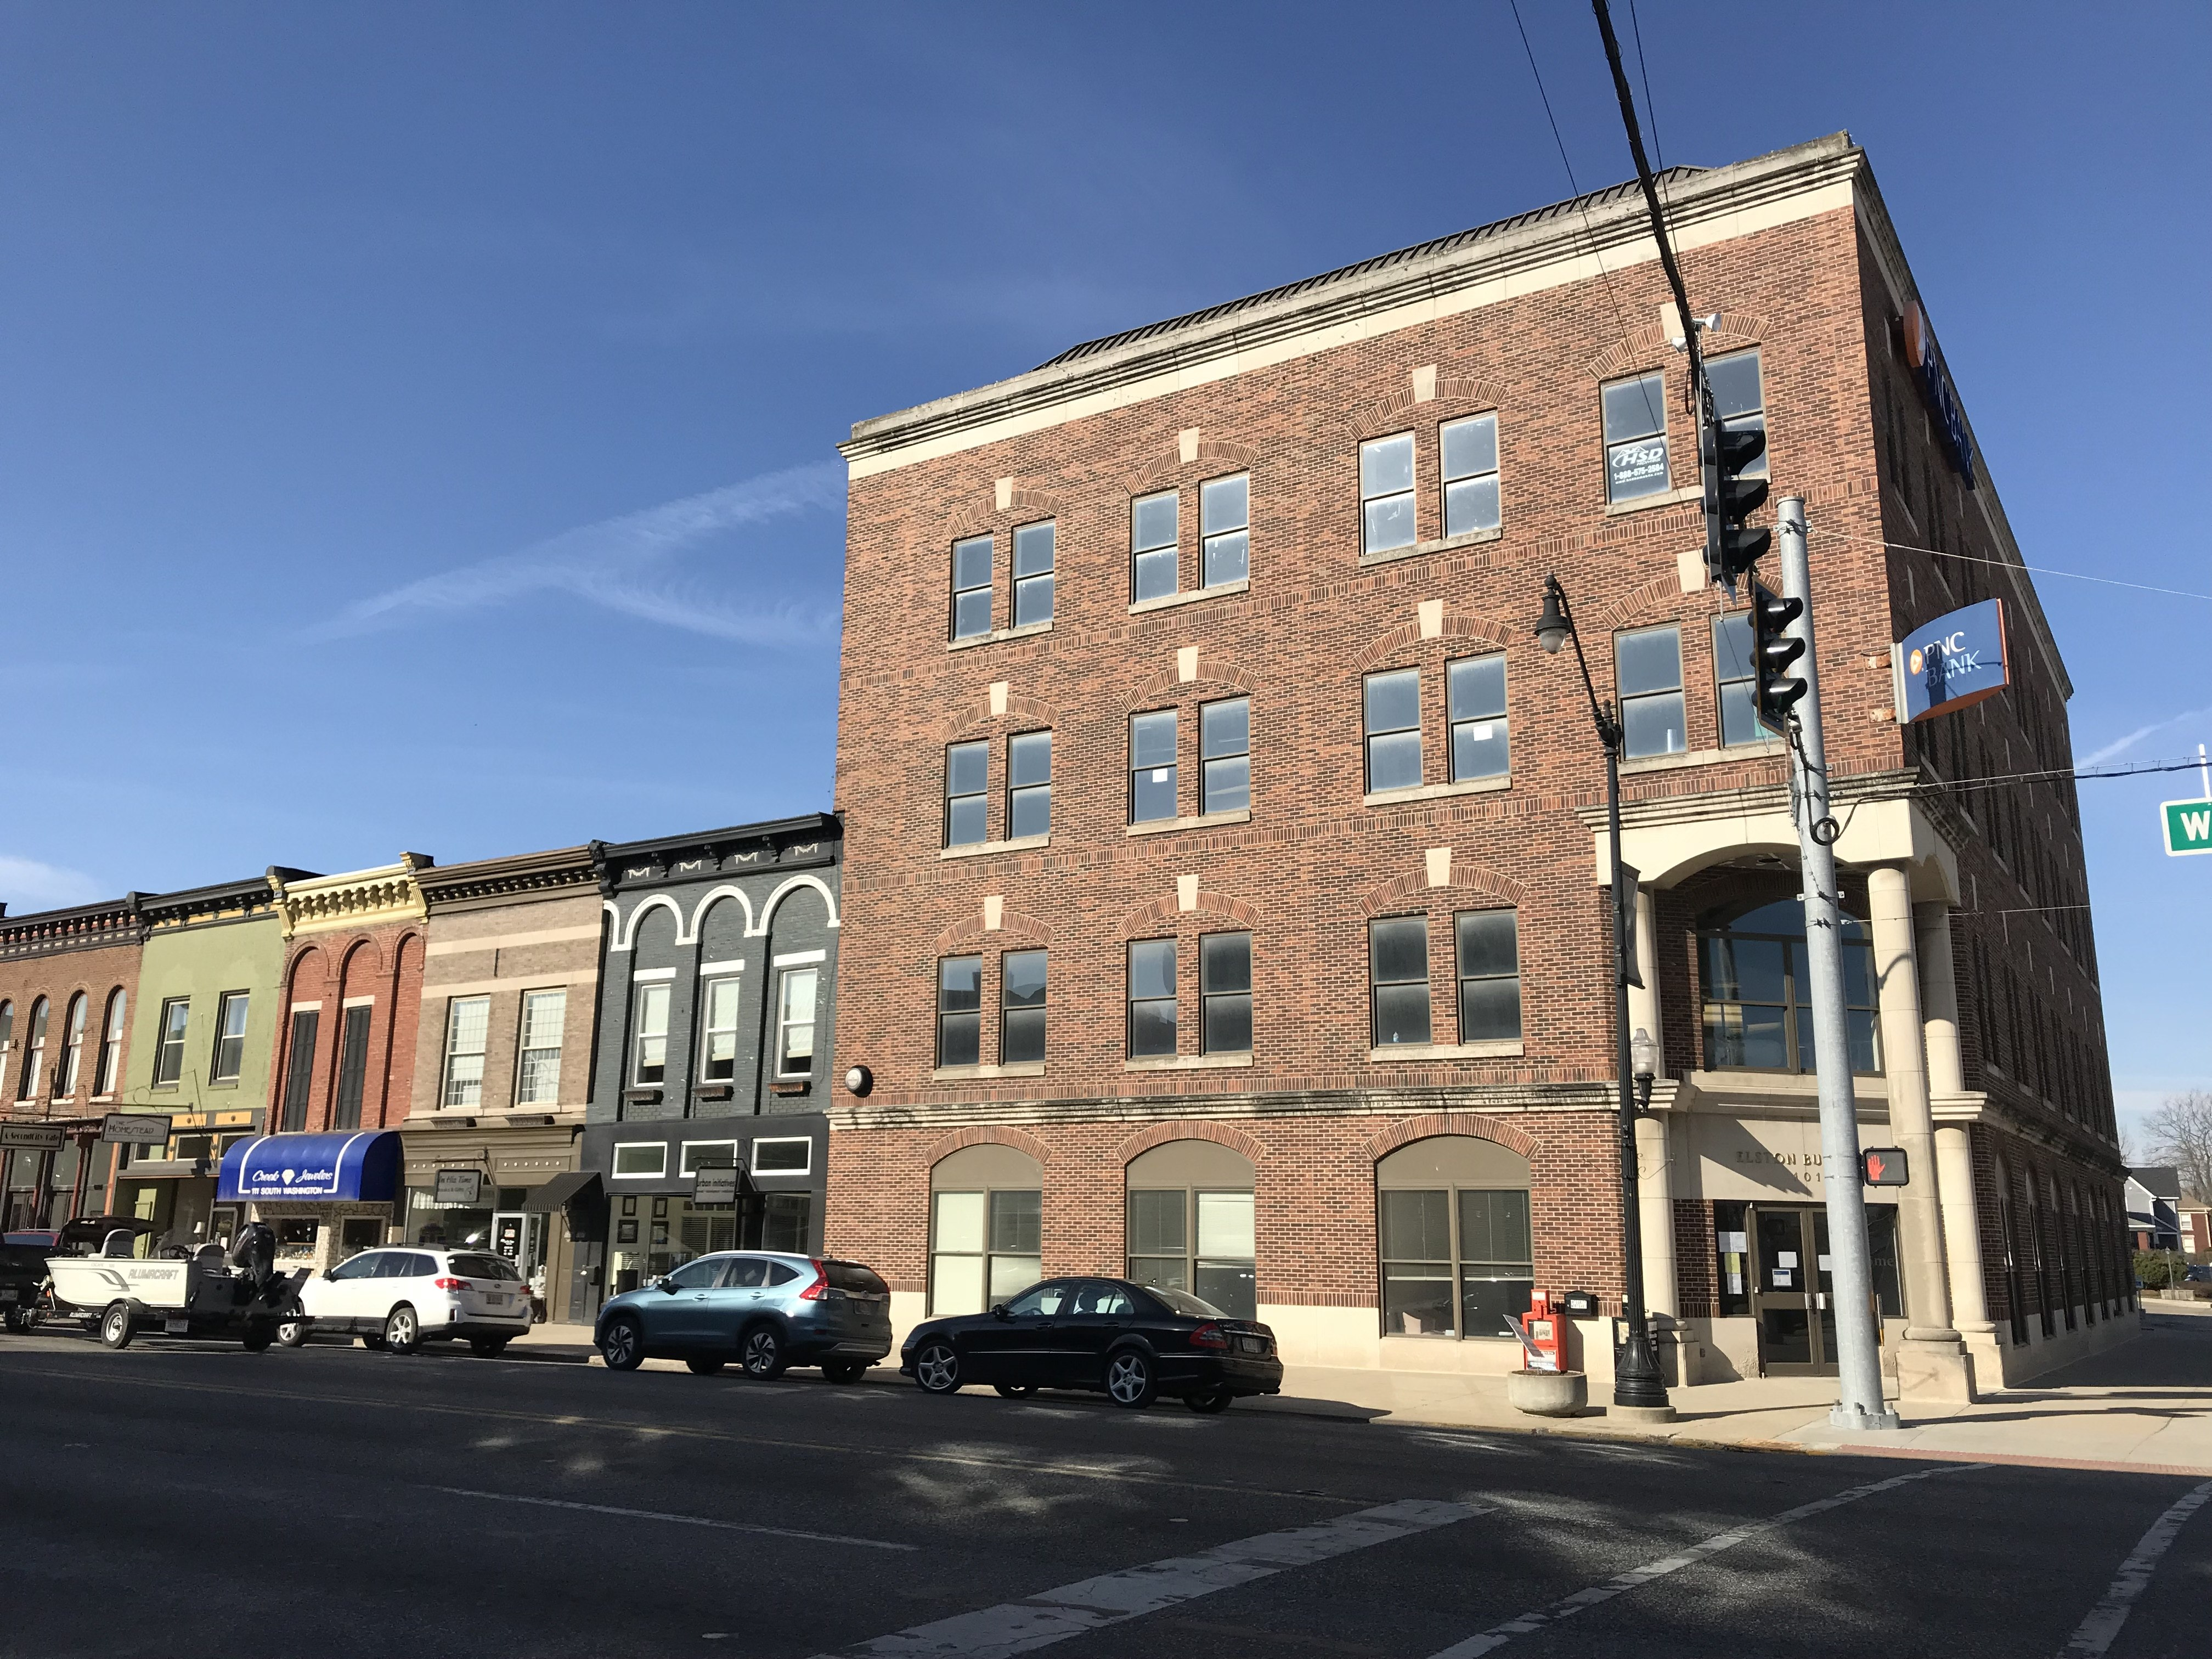 Crawfordsville launches Fusion 54 project - Aim